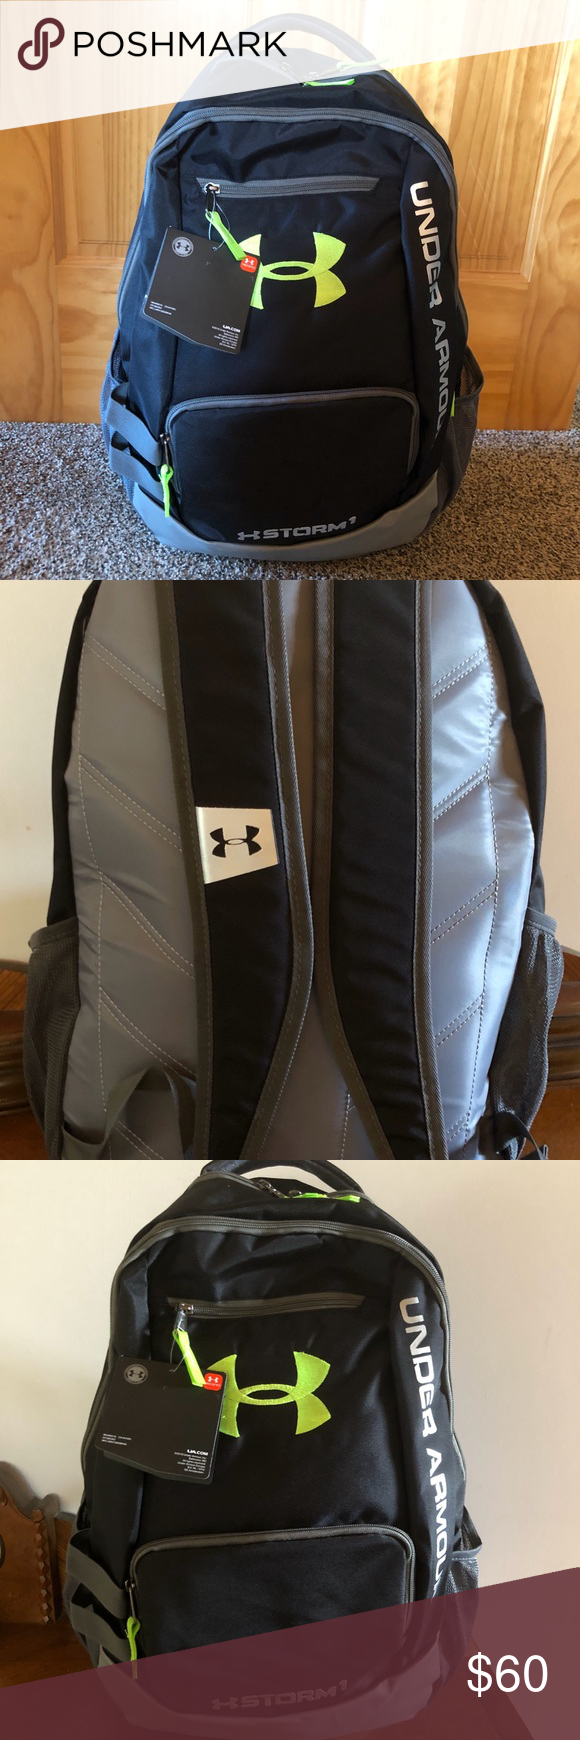 49a6f2f84210   FIRM   Under Armor Storm 1 Unisex Backpack NWT UA Storm technology  delivers